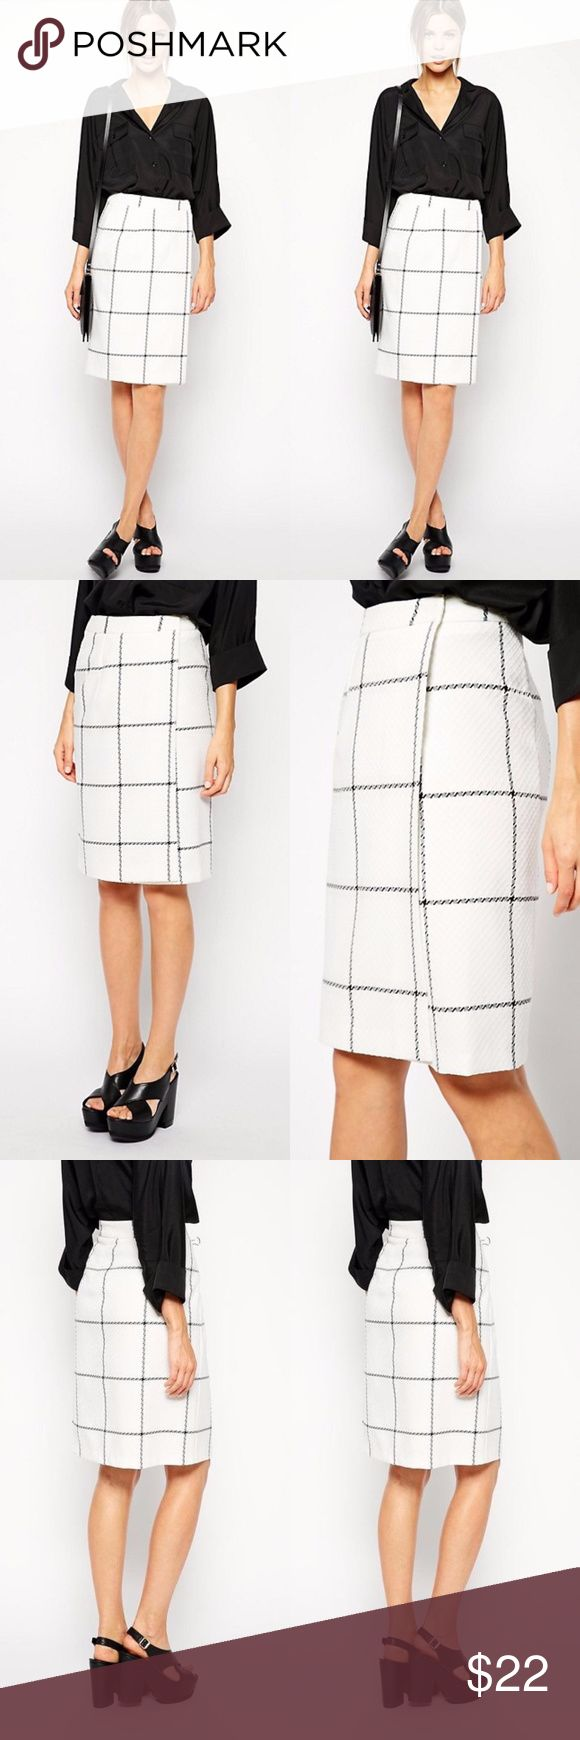 "ASOS White & Black Check Wrap Front Skirt White and Black check wrap front skirt by ASOS, knee length or longer depending on your height.  Super stylish.  Slight orange faded staining on hip (see last picture).  Measurements (taken lying flat): 23.5"" length 14"" waist 18"" hip  Materials: 81% polyester 19% viscose Lining - 100% polyester  No Trades ASOS Skirts"